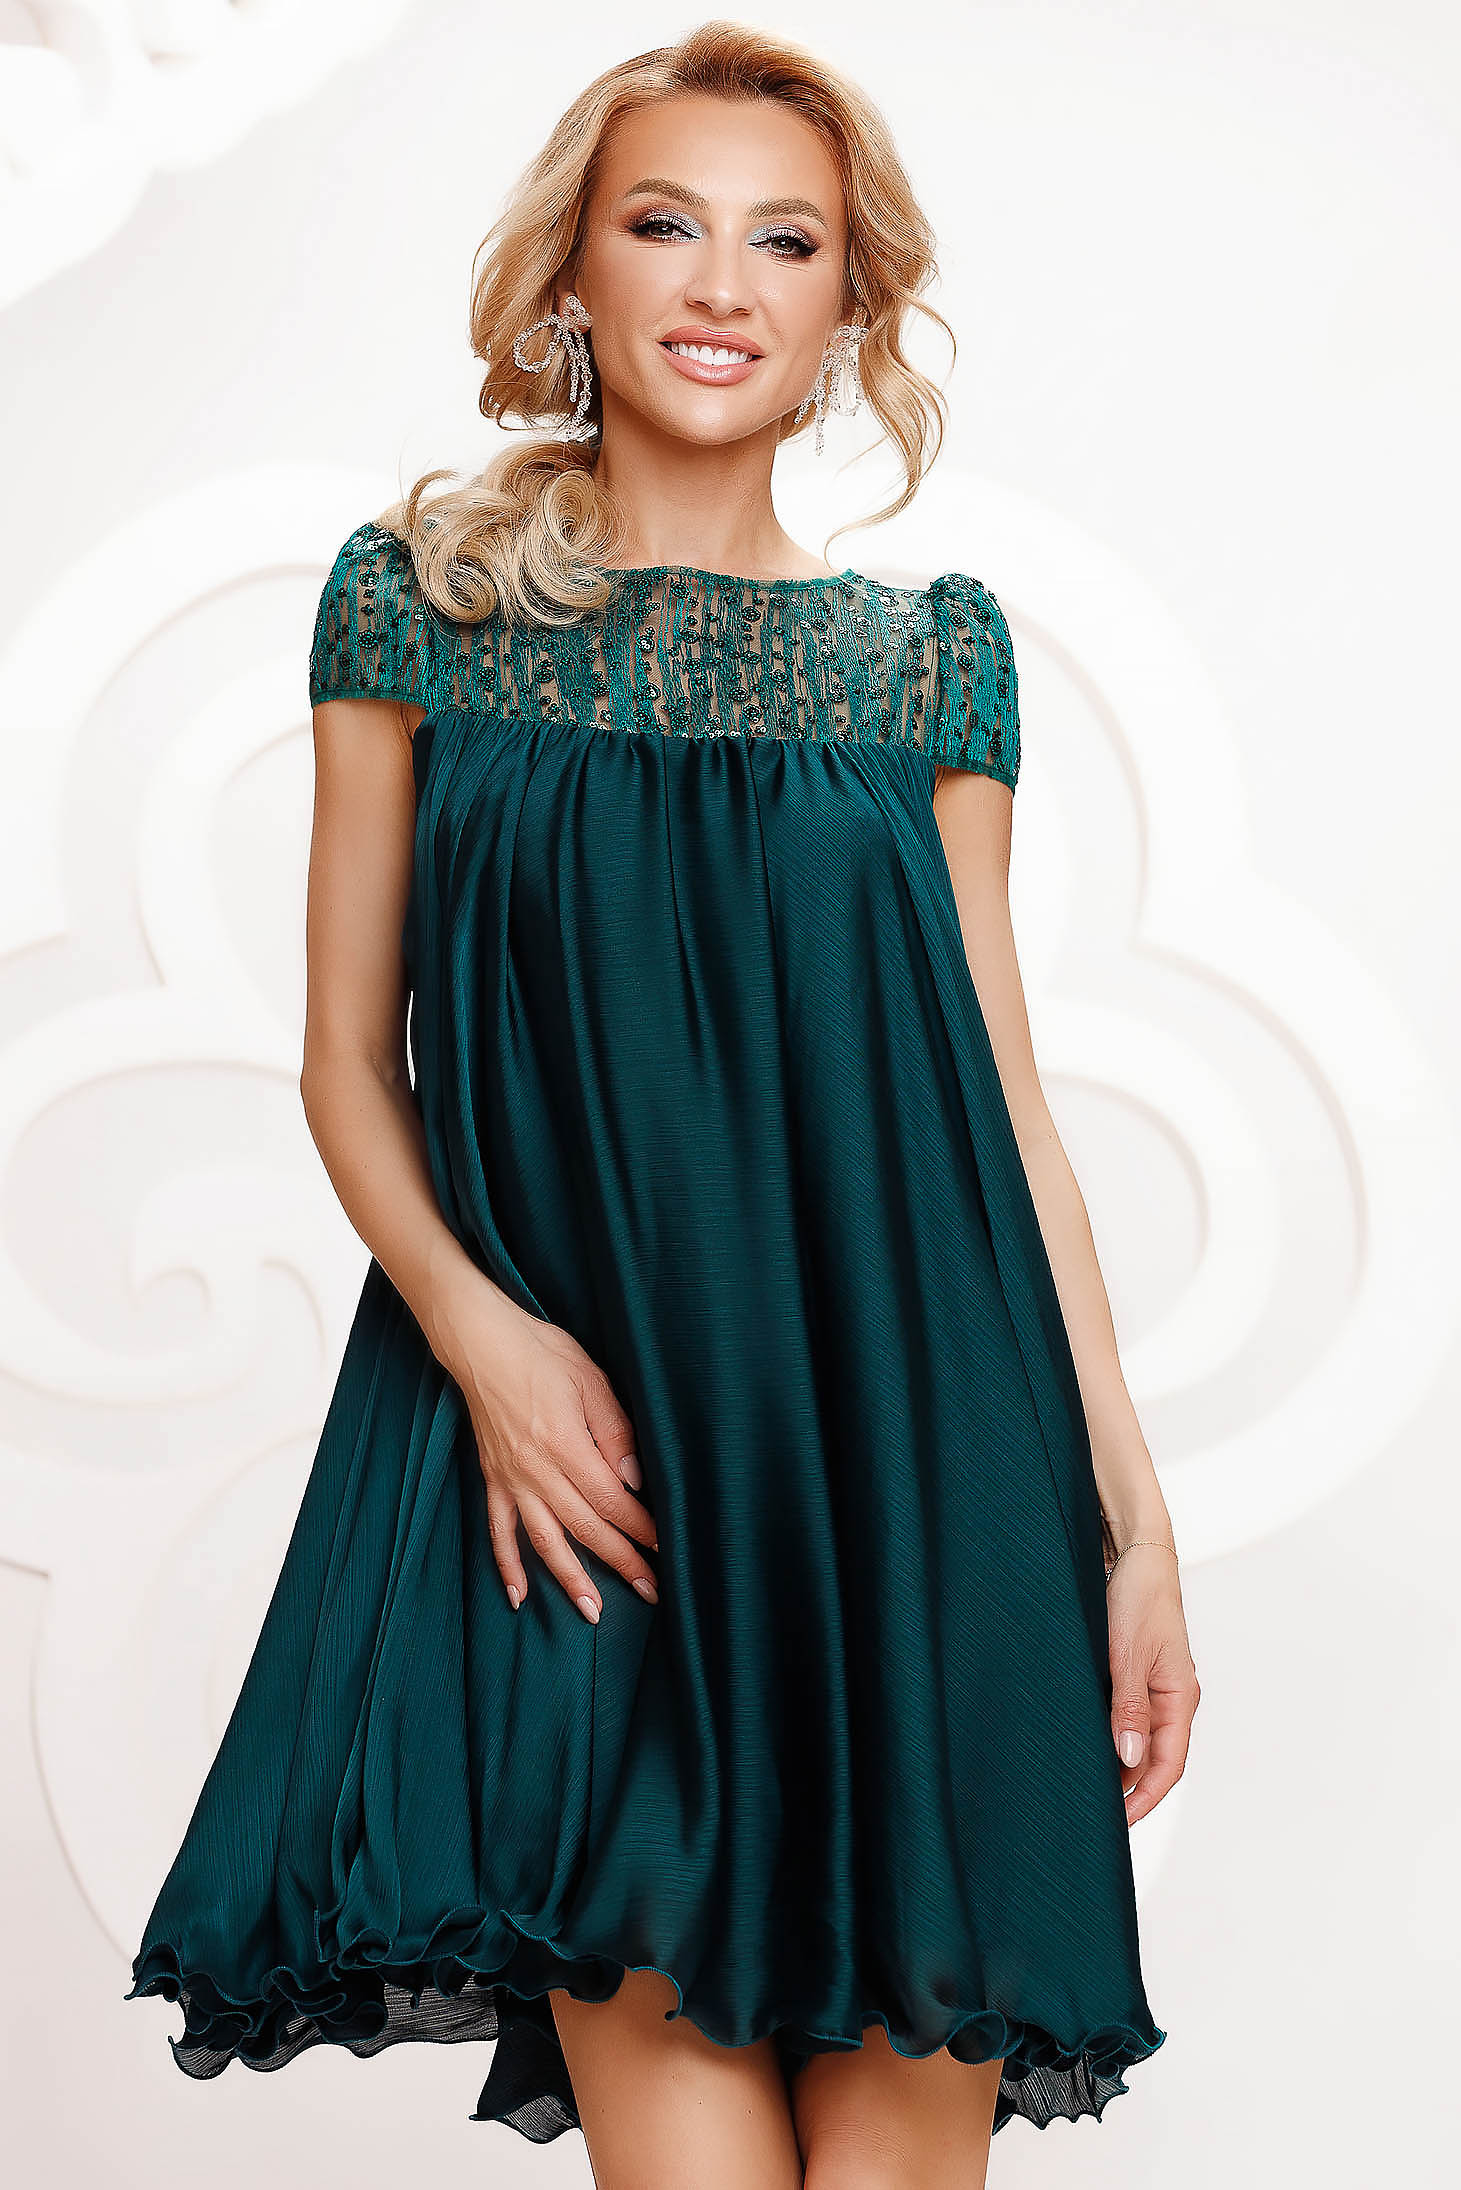 Dirty green dress from veil fabric occasional with lace details with crystal embellished details loose fit